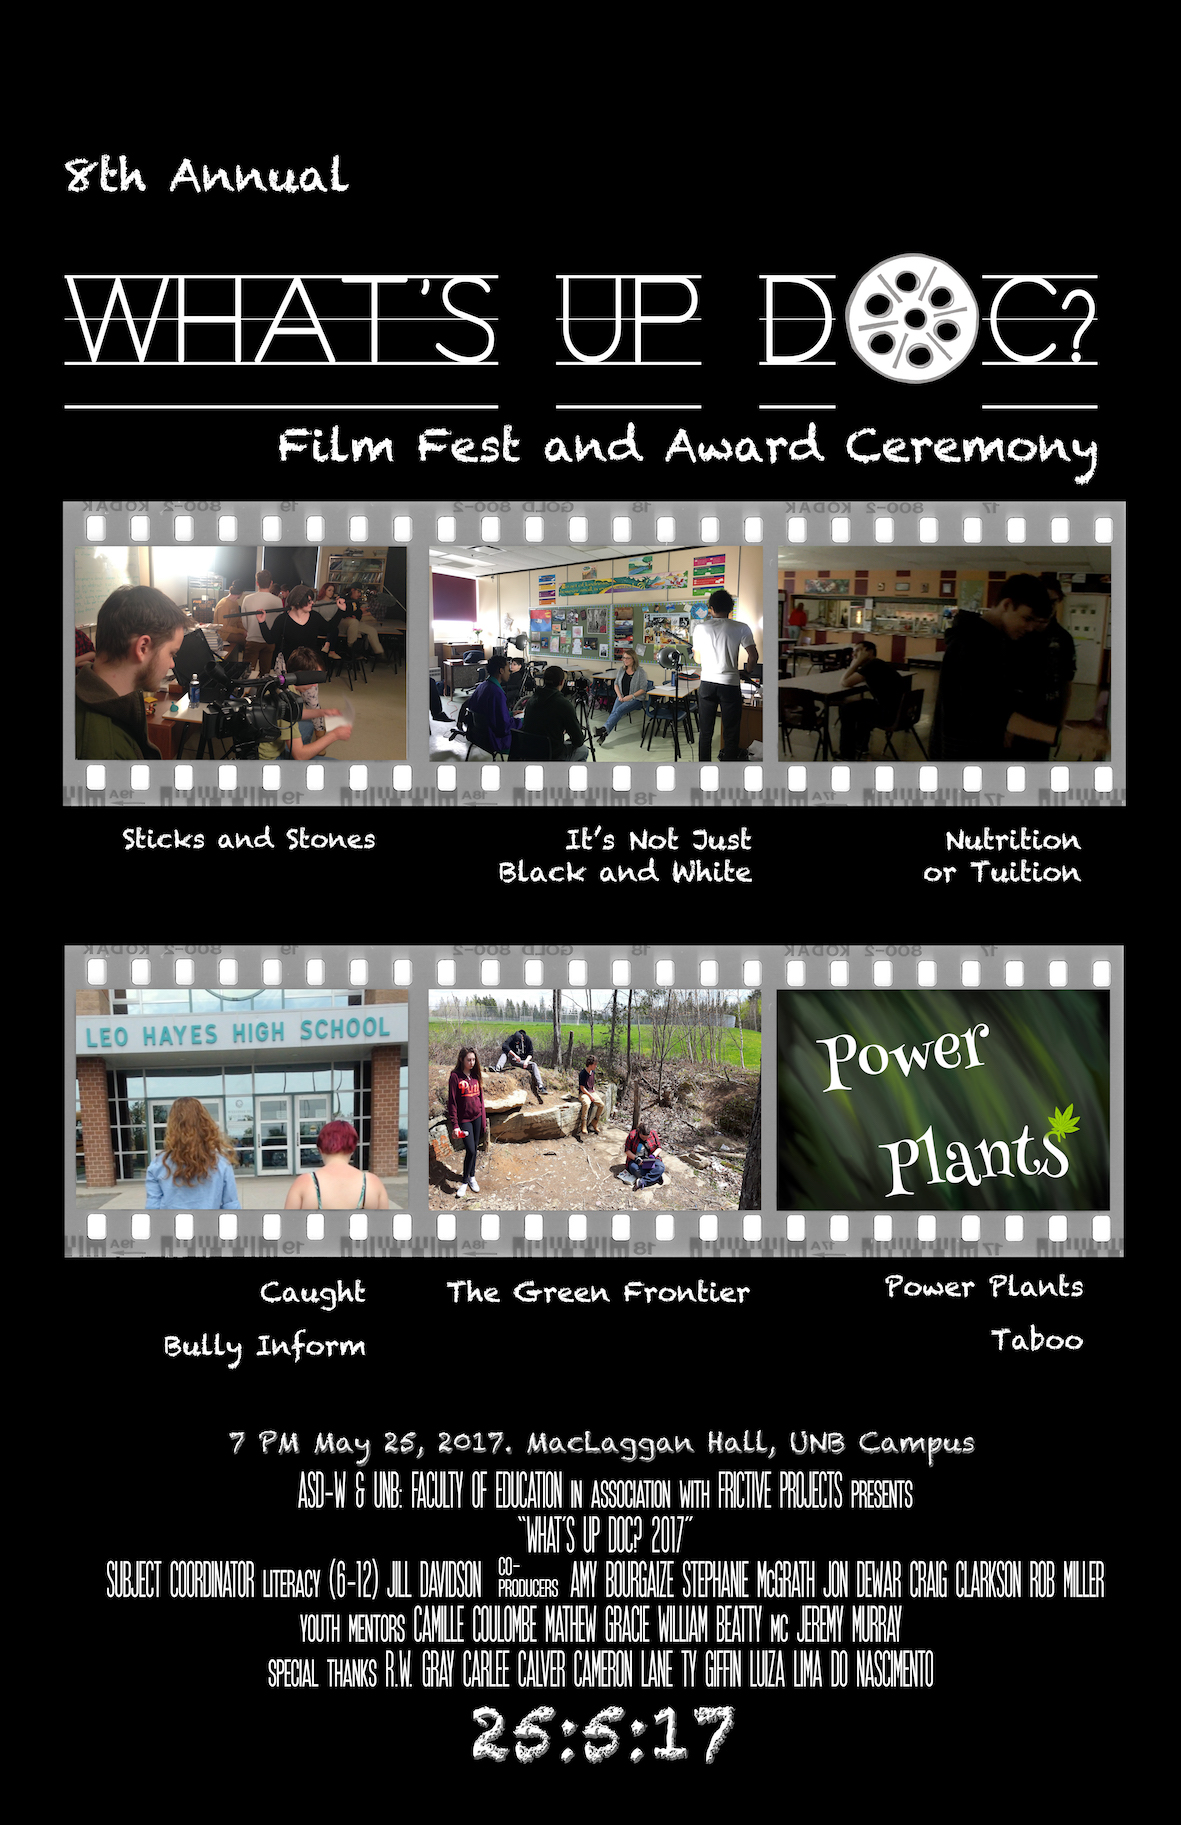 FINAL What_s up Doc Poster 2017 (pictures).jpg